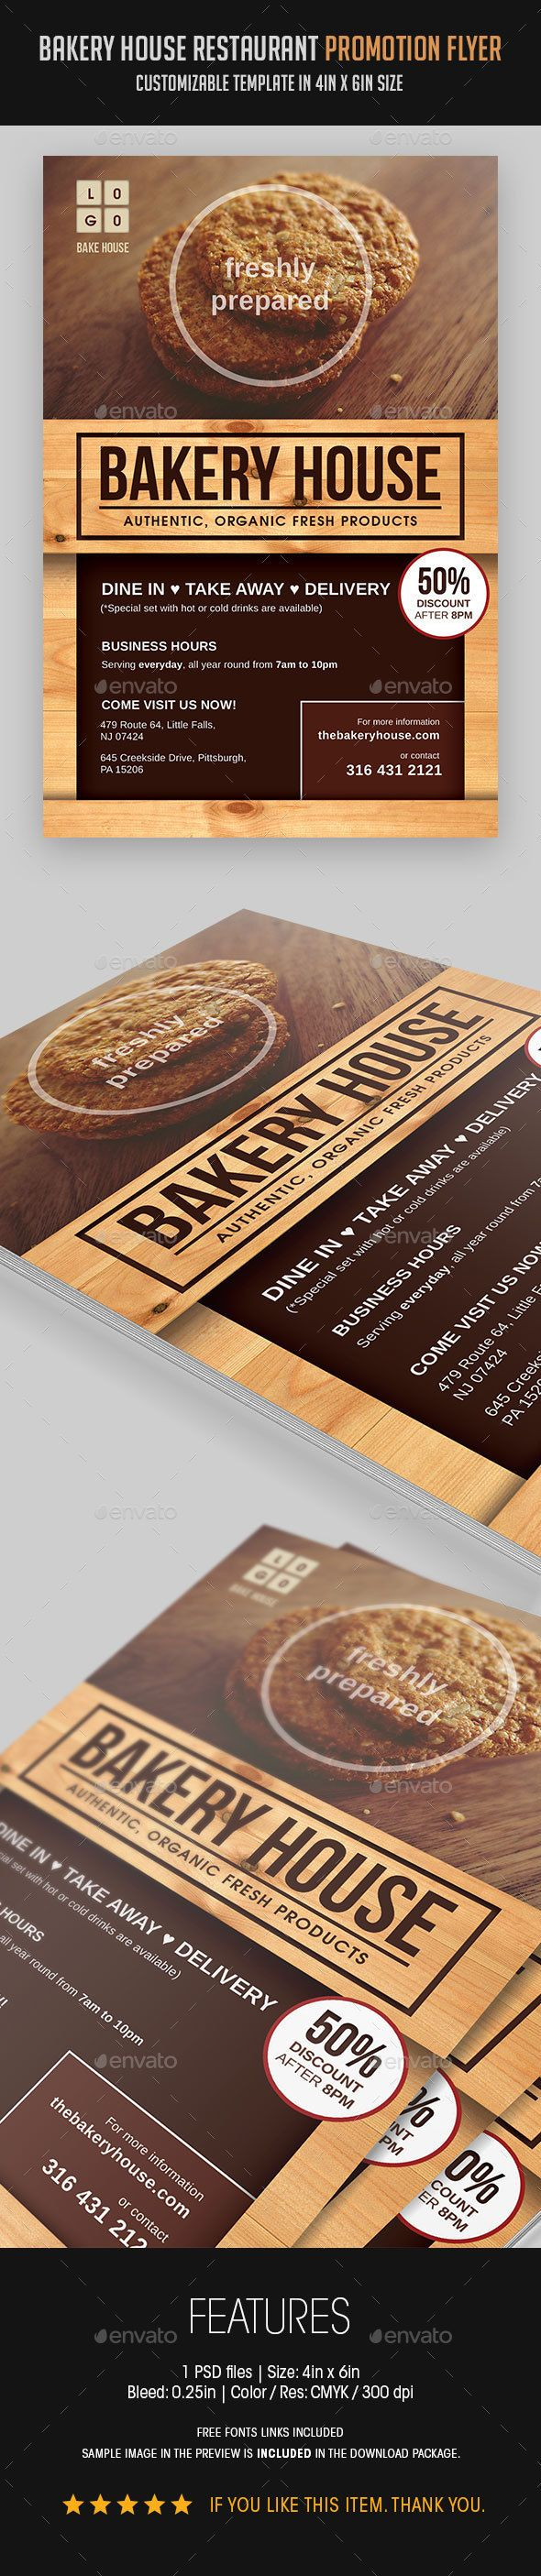 Bakery House Restaurant Promotion Flyer - Download…